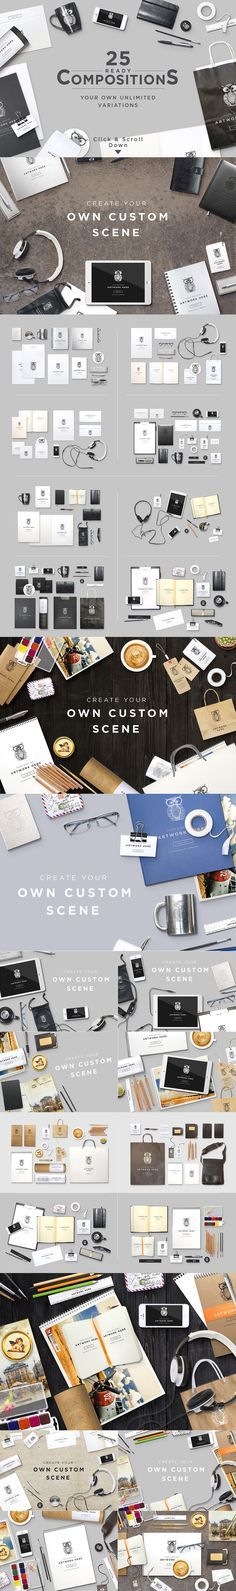 Header Stationery Scene Generator by itembridge creative store on Creative Market